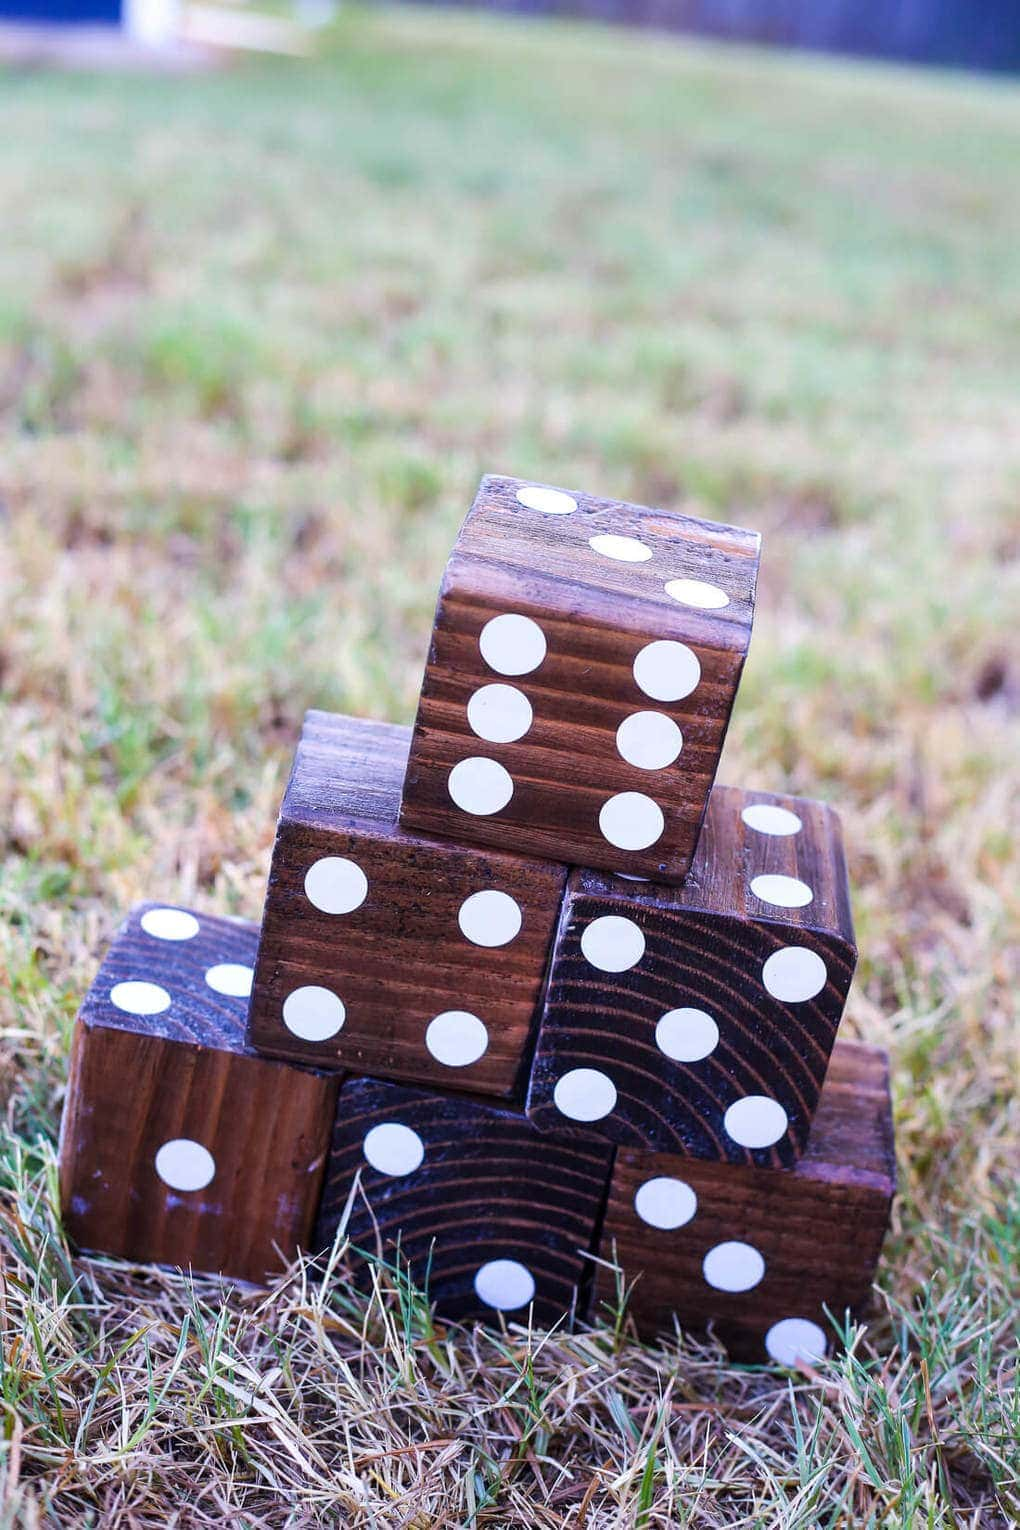 Stacked DIY yard dice